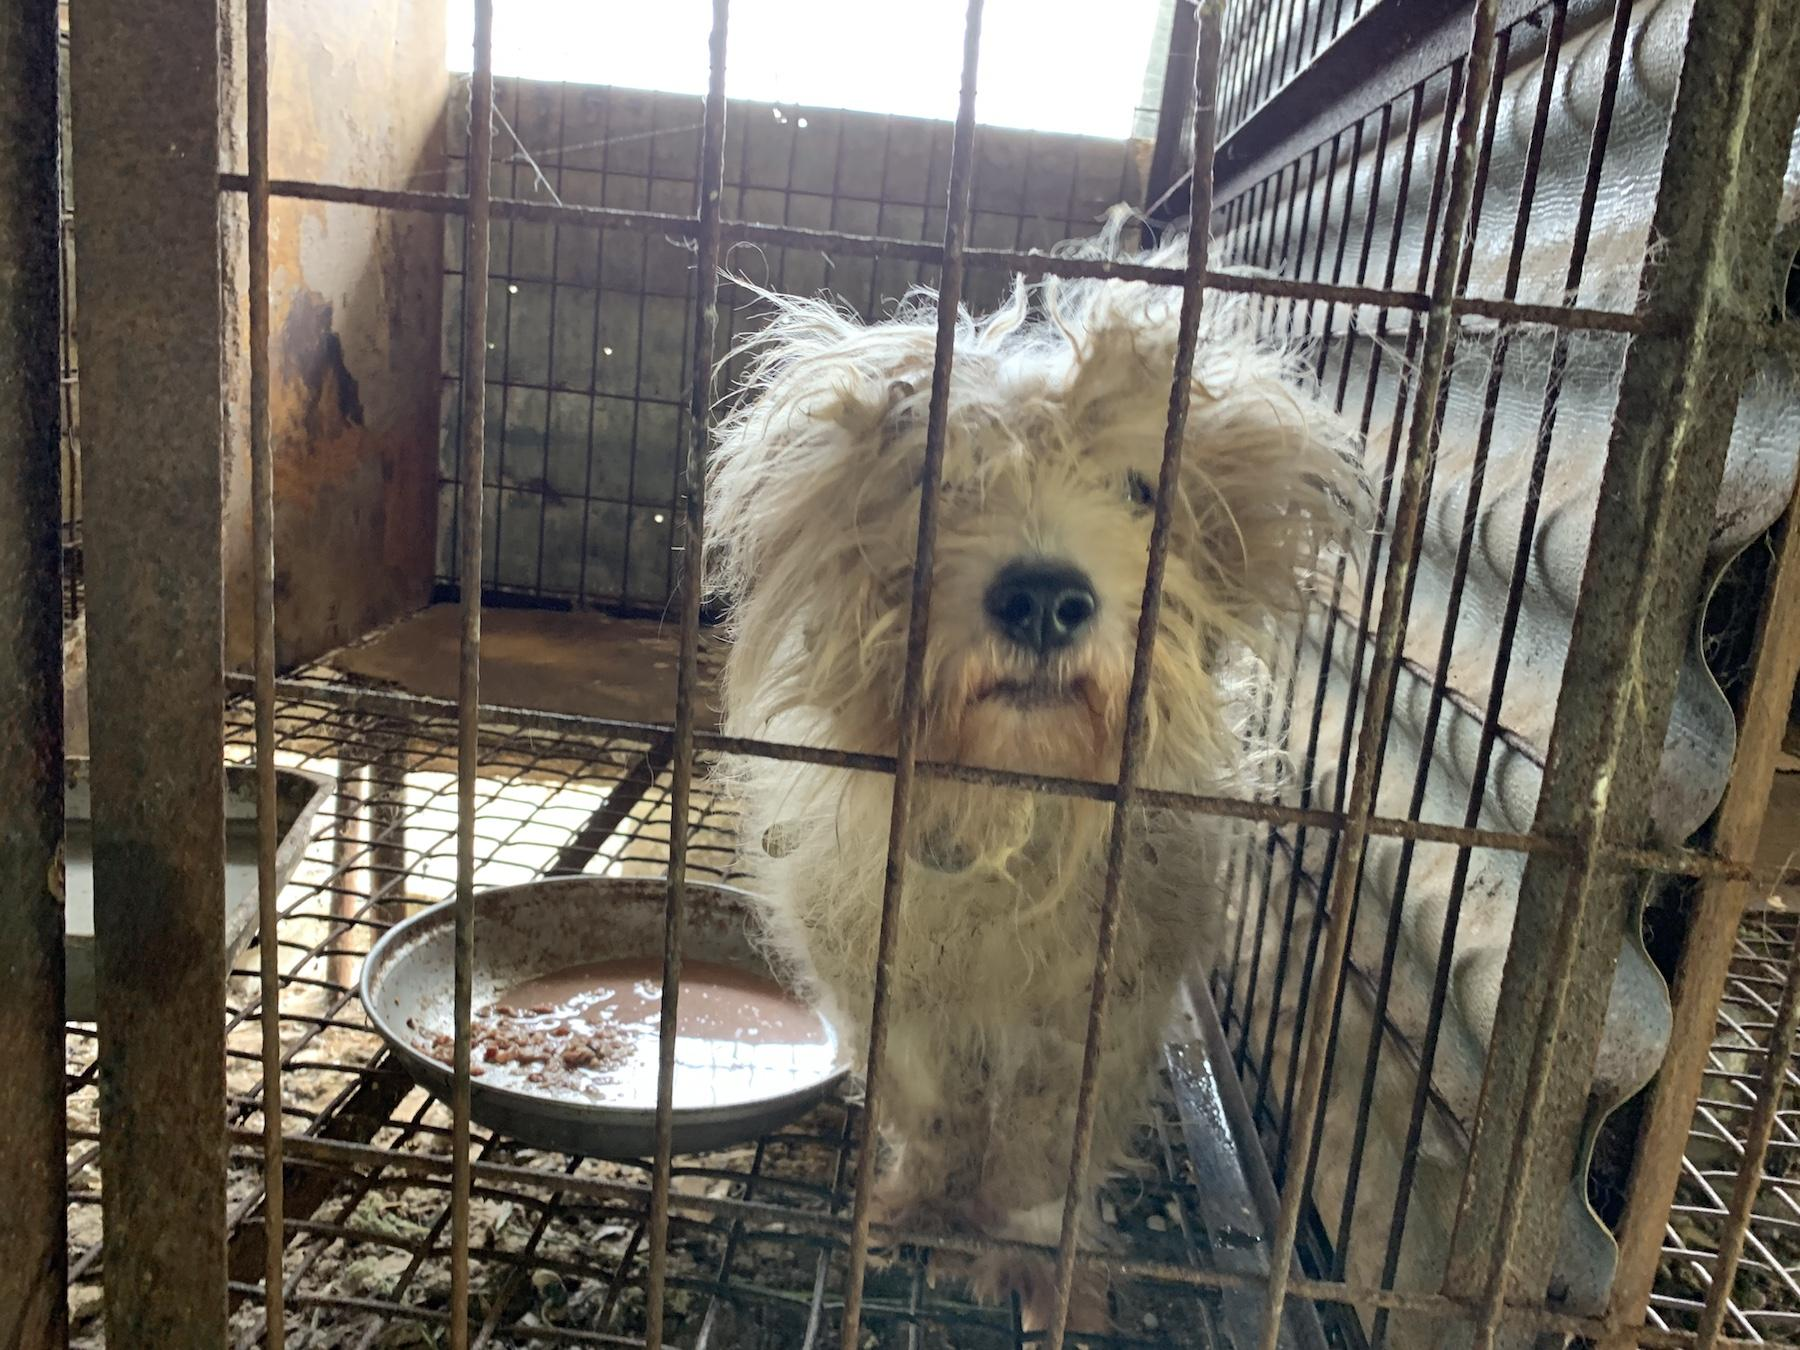 Hsi Dog In Cage 2